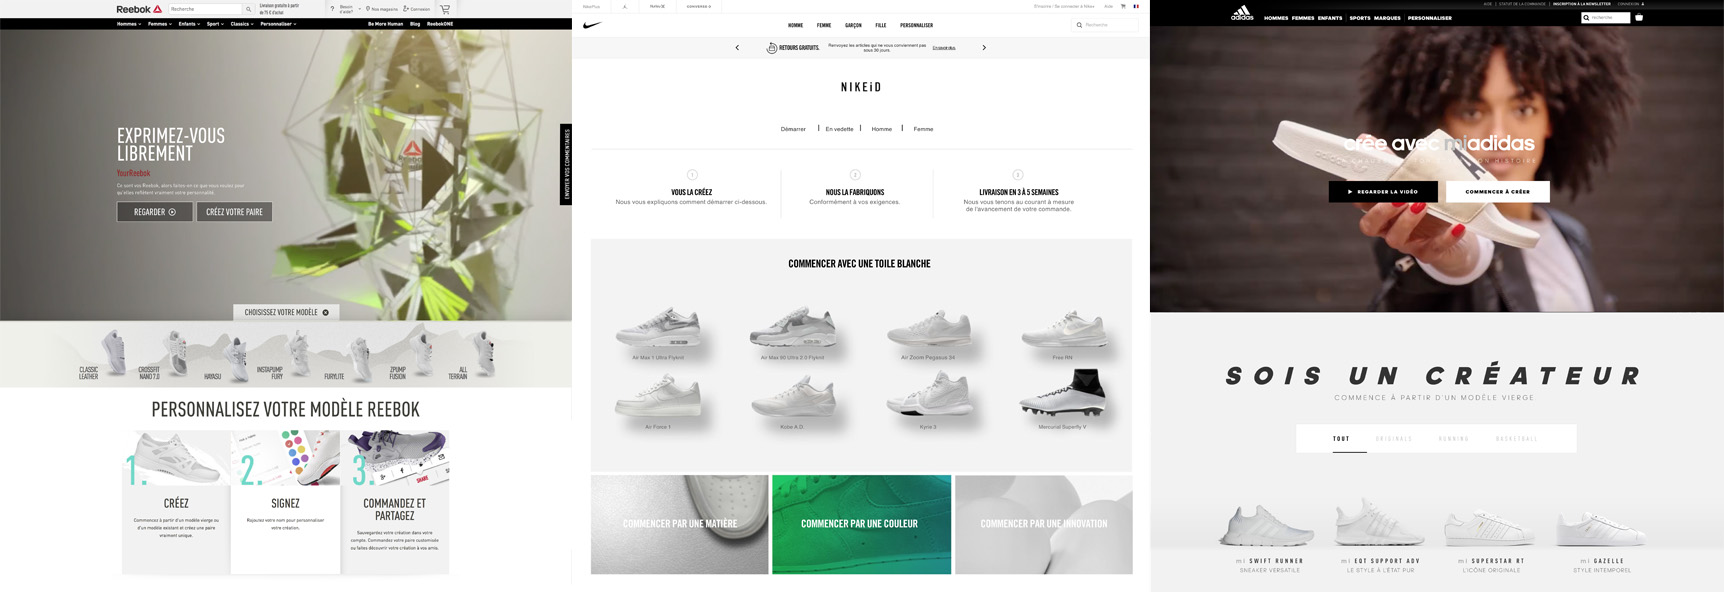 sites internet personnaliser sneakers